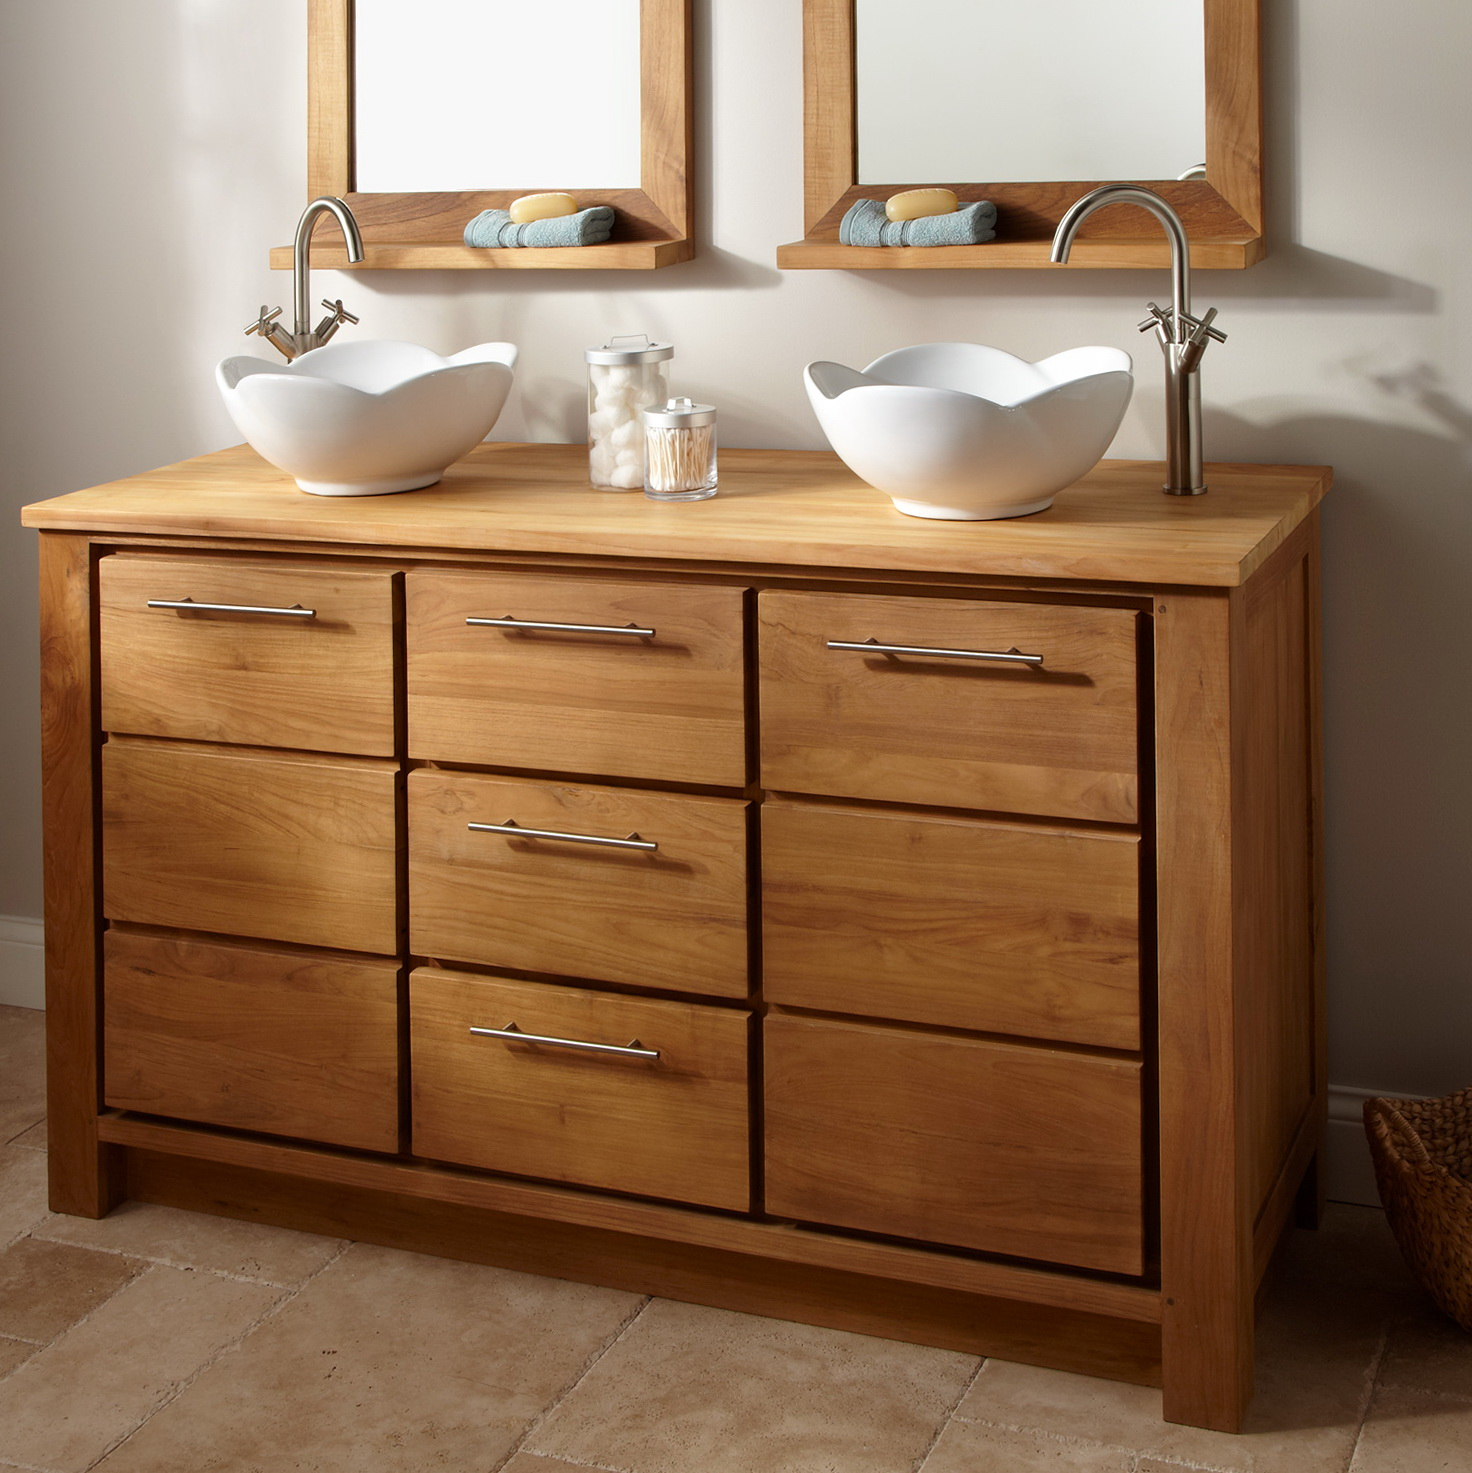 Rustic Bathroom Vanities Cabinets